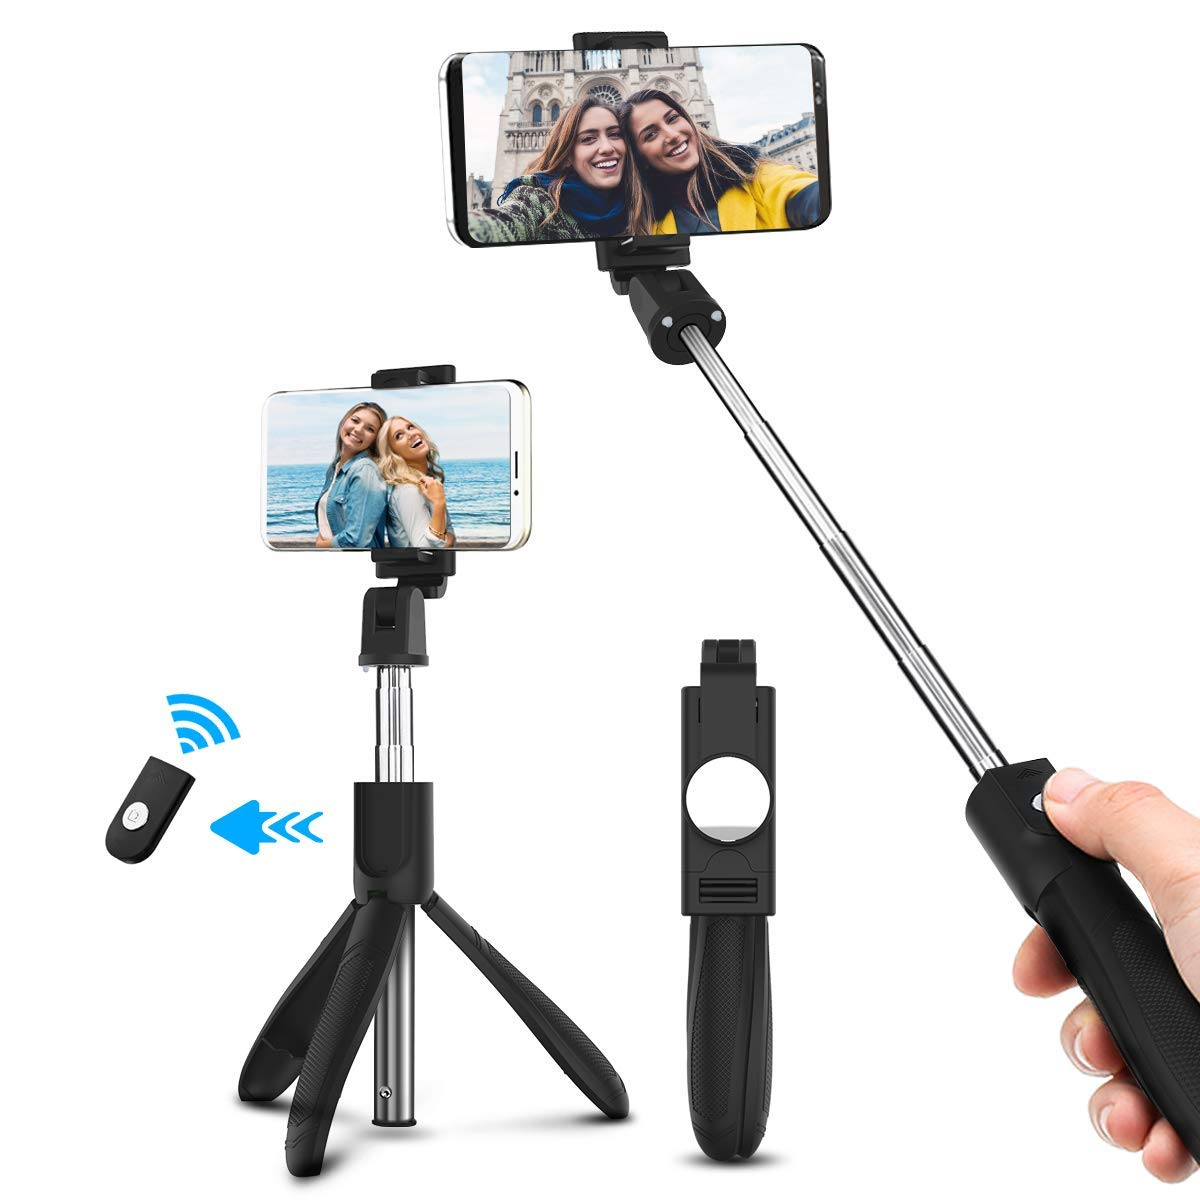 ELEGIANT EGS-003 2 in 1 Bluetooth Selfie Stick Tripod with Remote Trigger